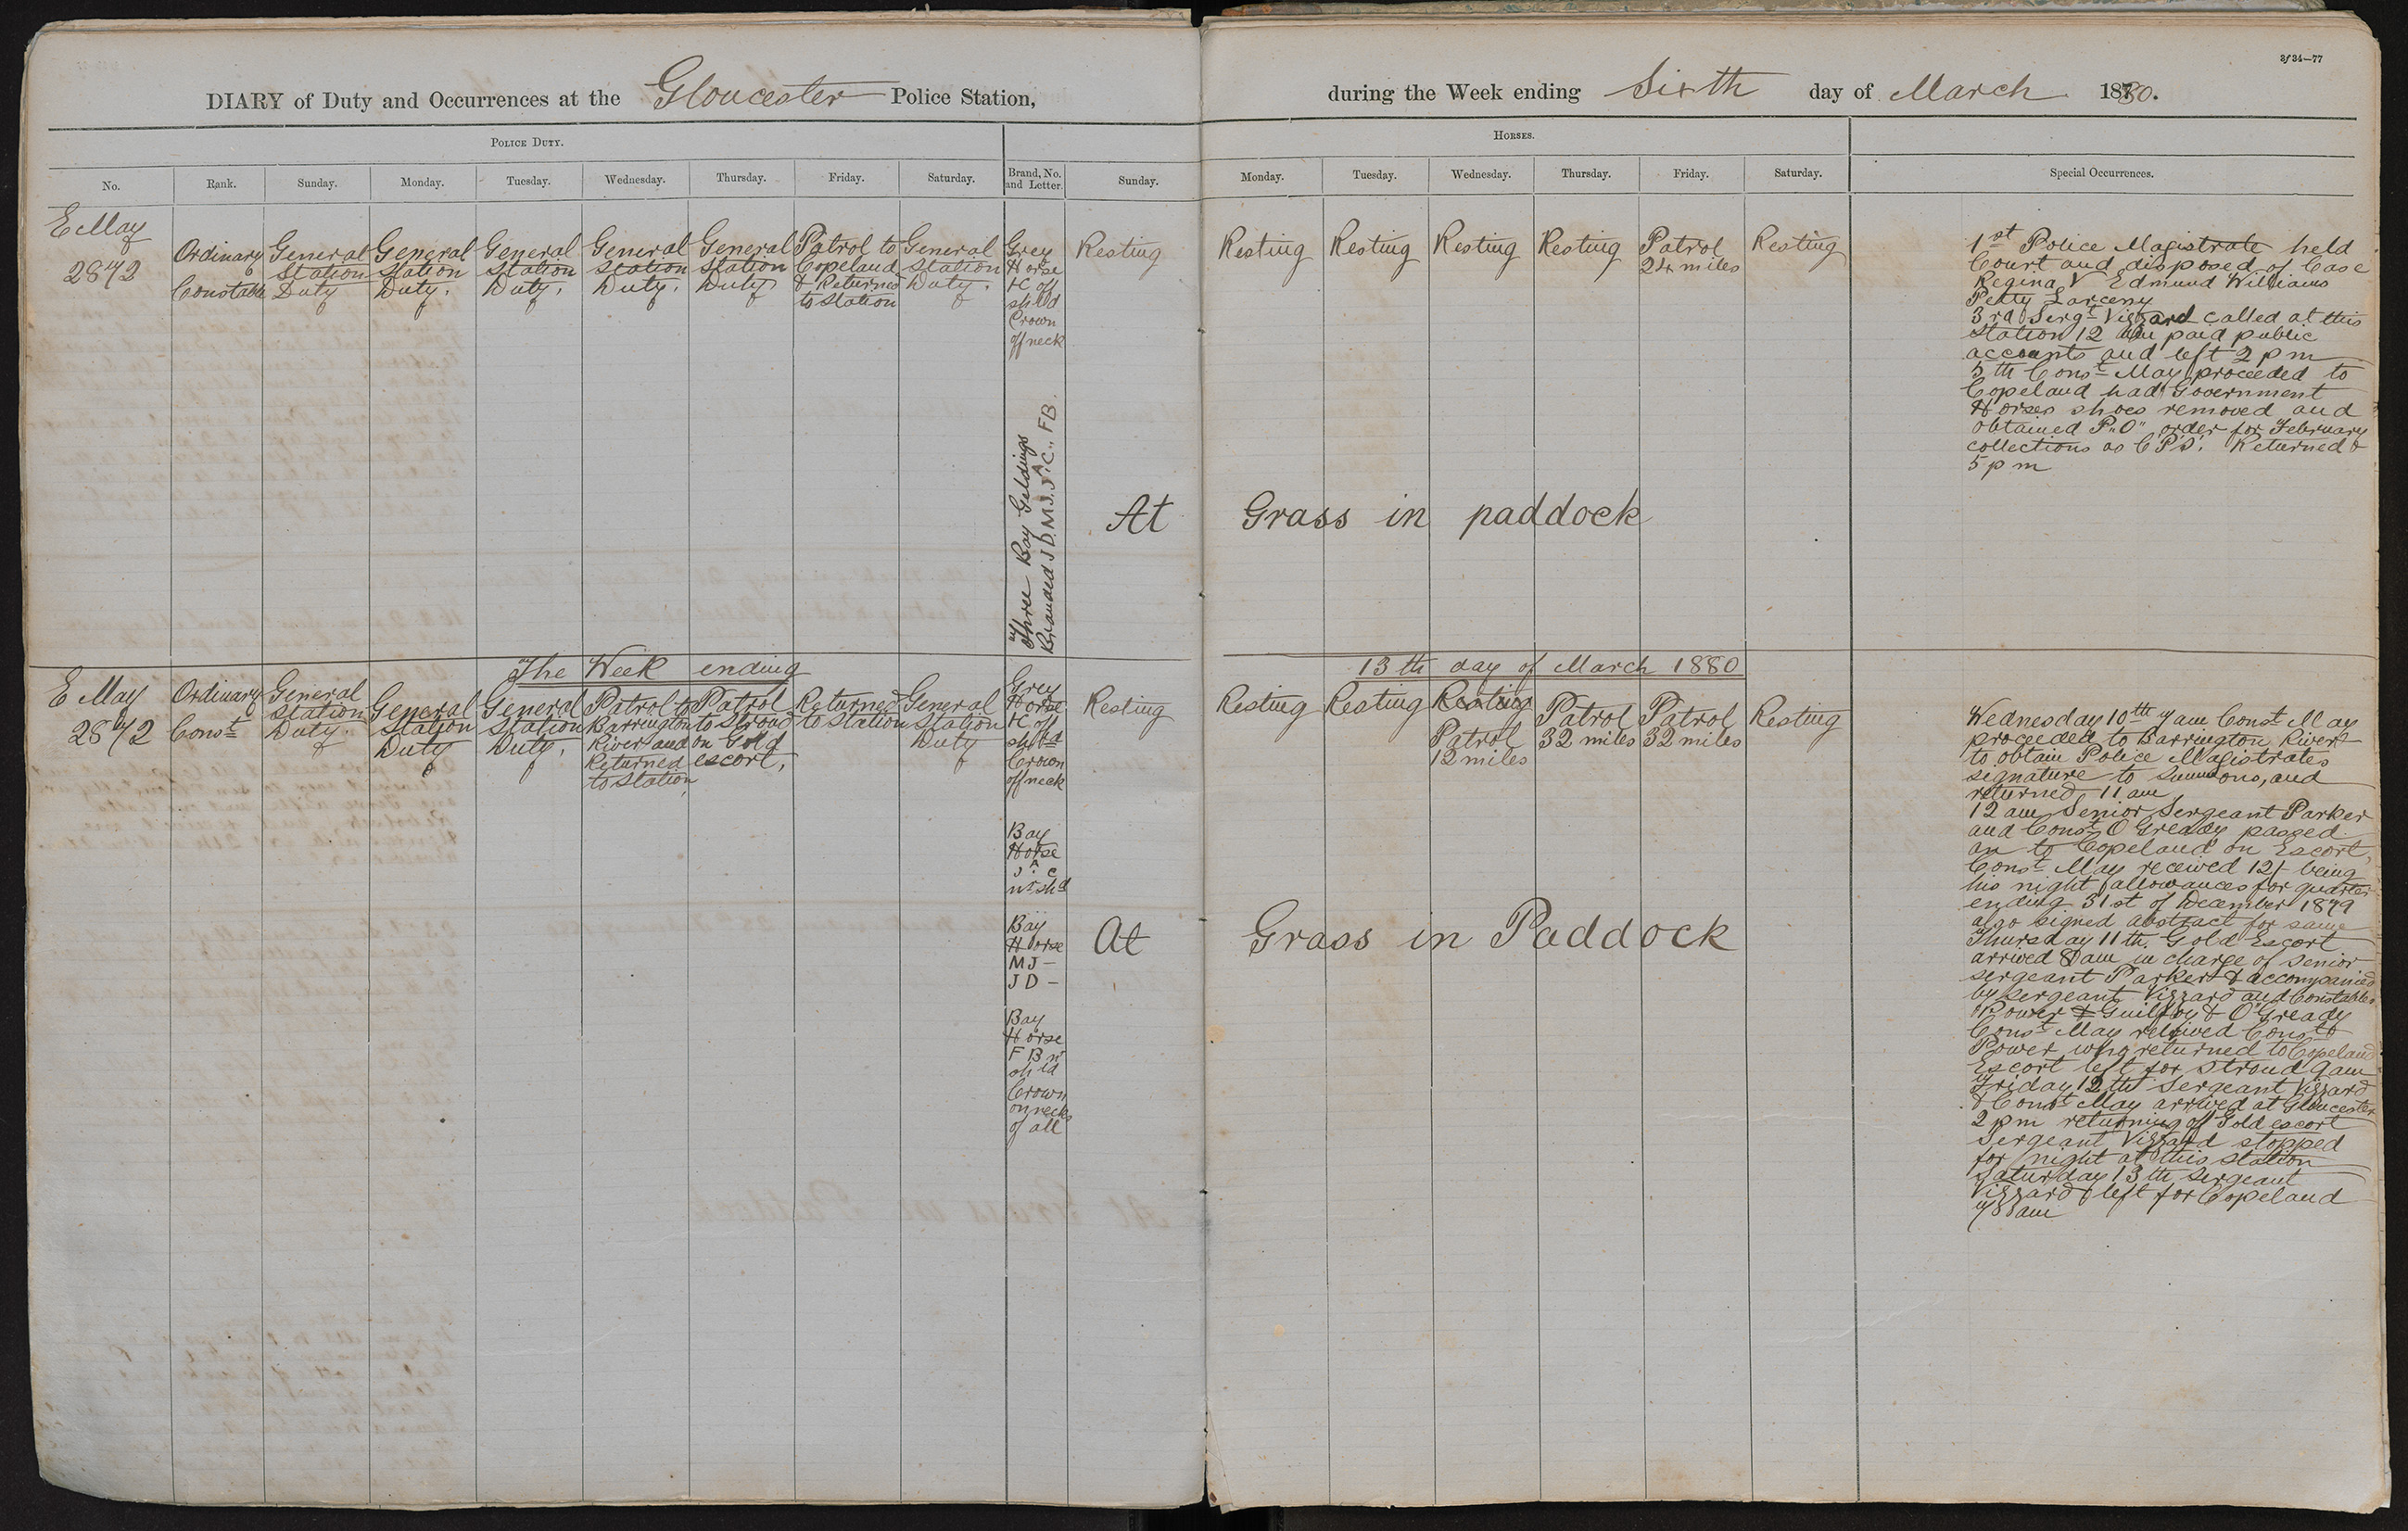 Diary of duty and occurrences at the Gloucester Police Station during the week ending the 6th day of March 1880